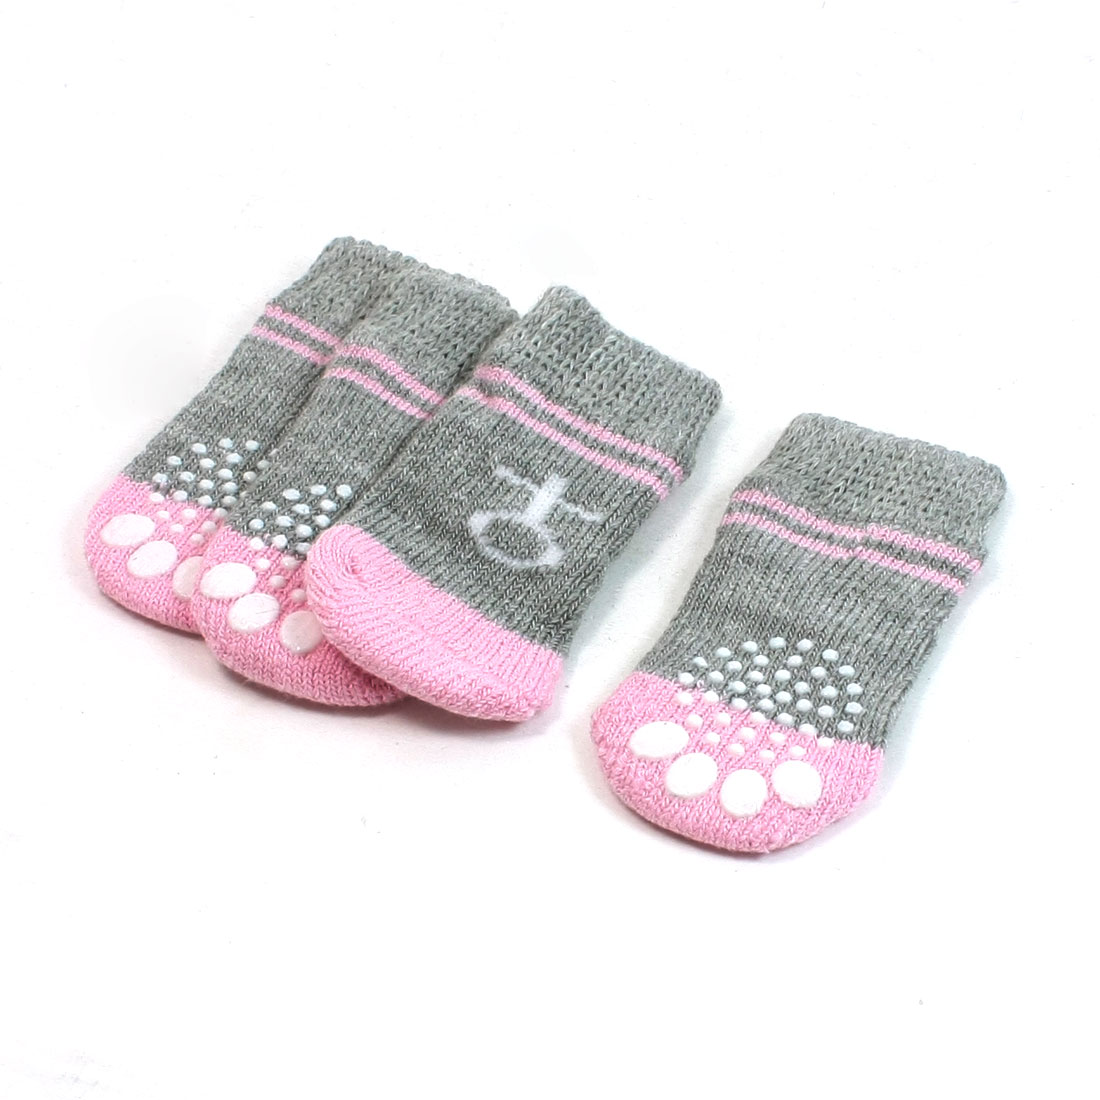 2 Pairs Paw Print Elastic Knitted Pet Dog Yorkie Socks Gray Pink Size M